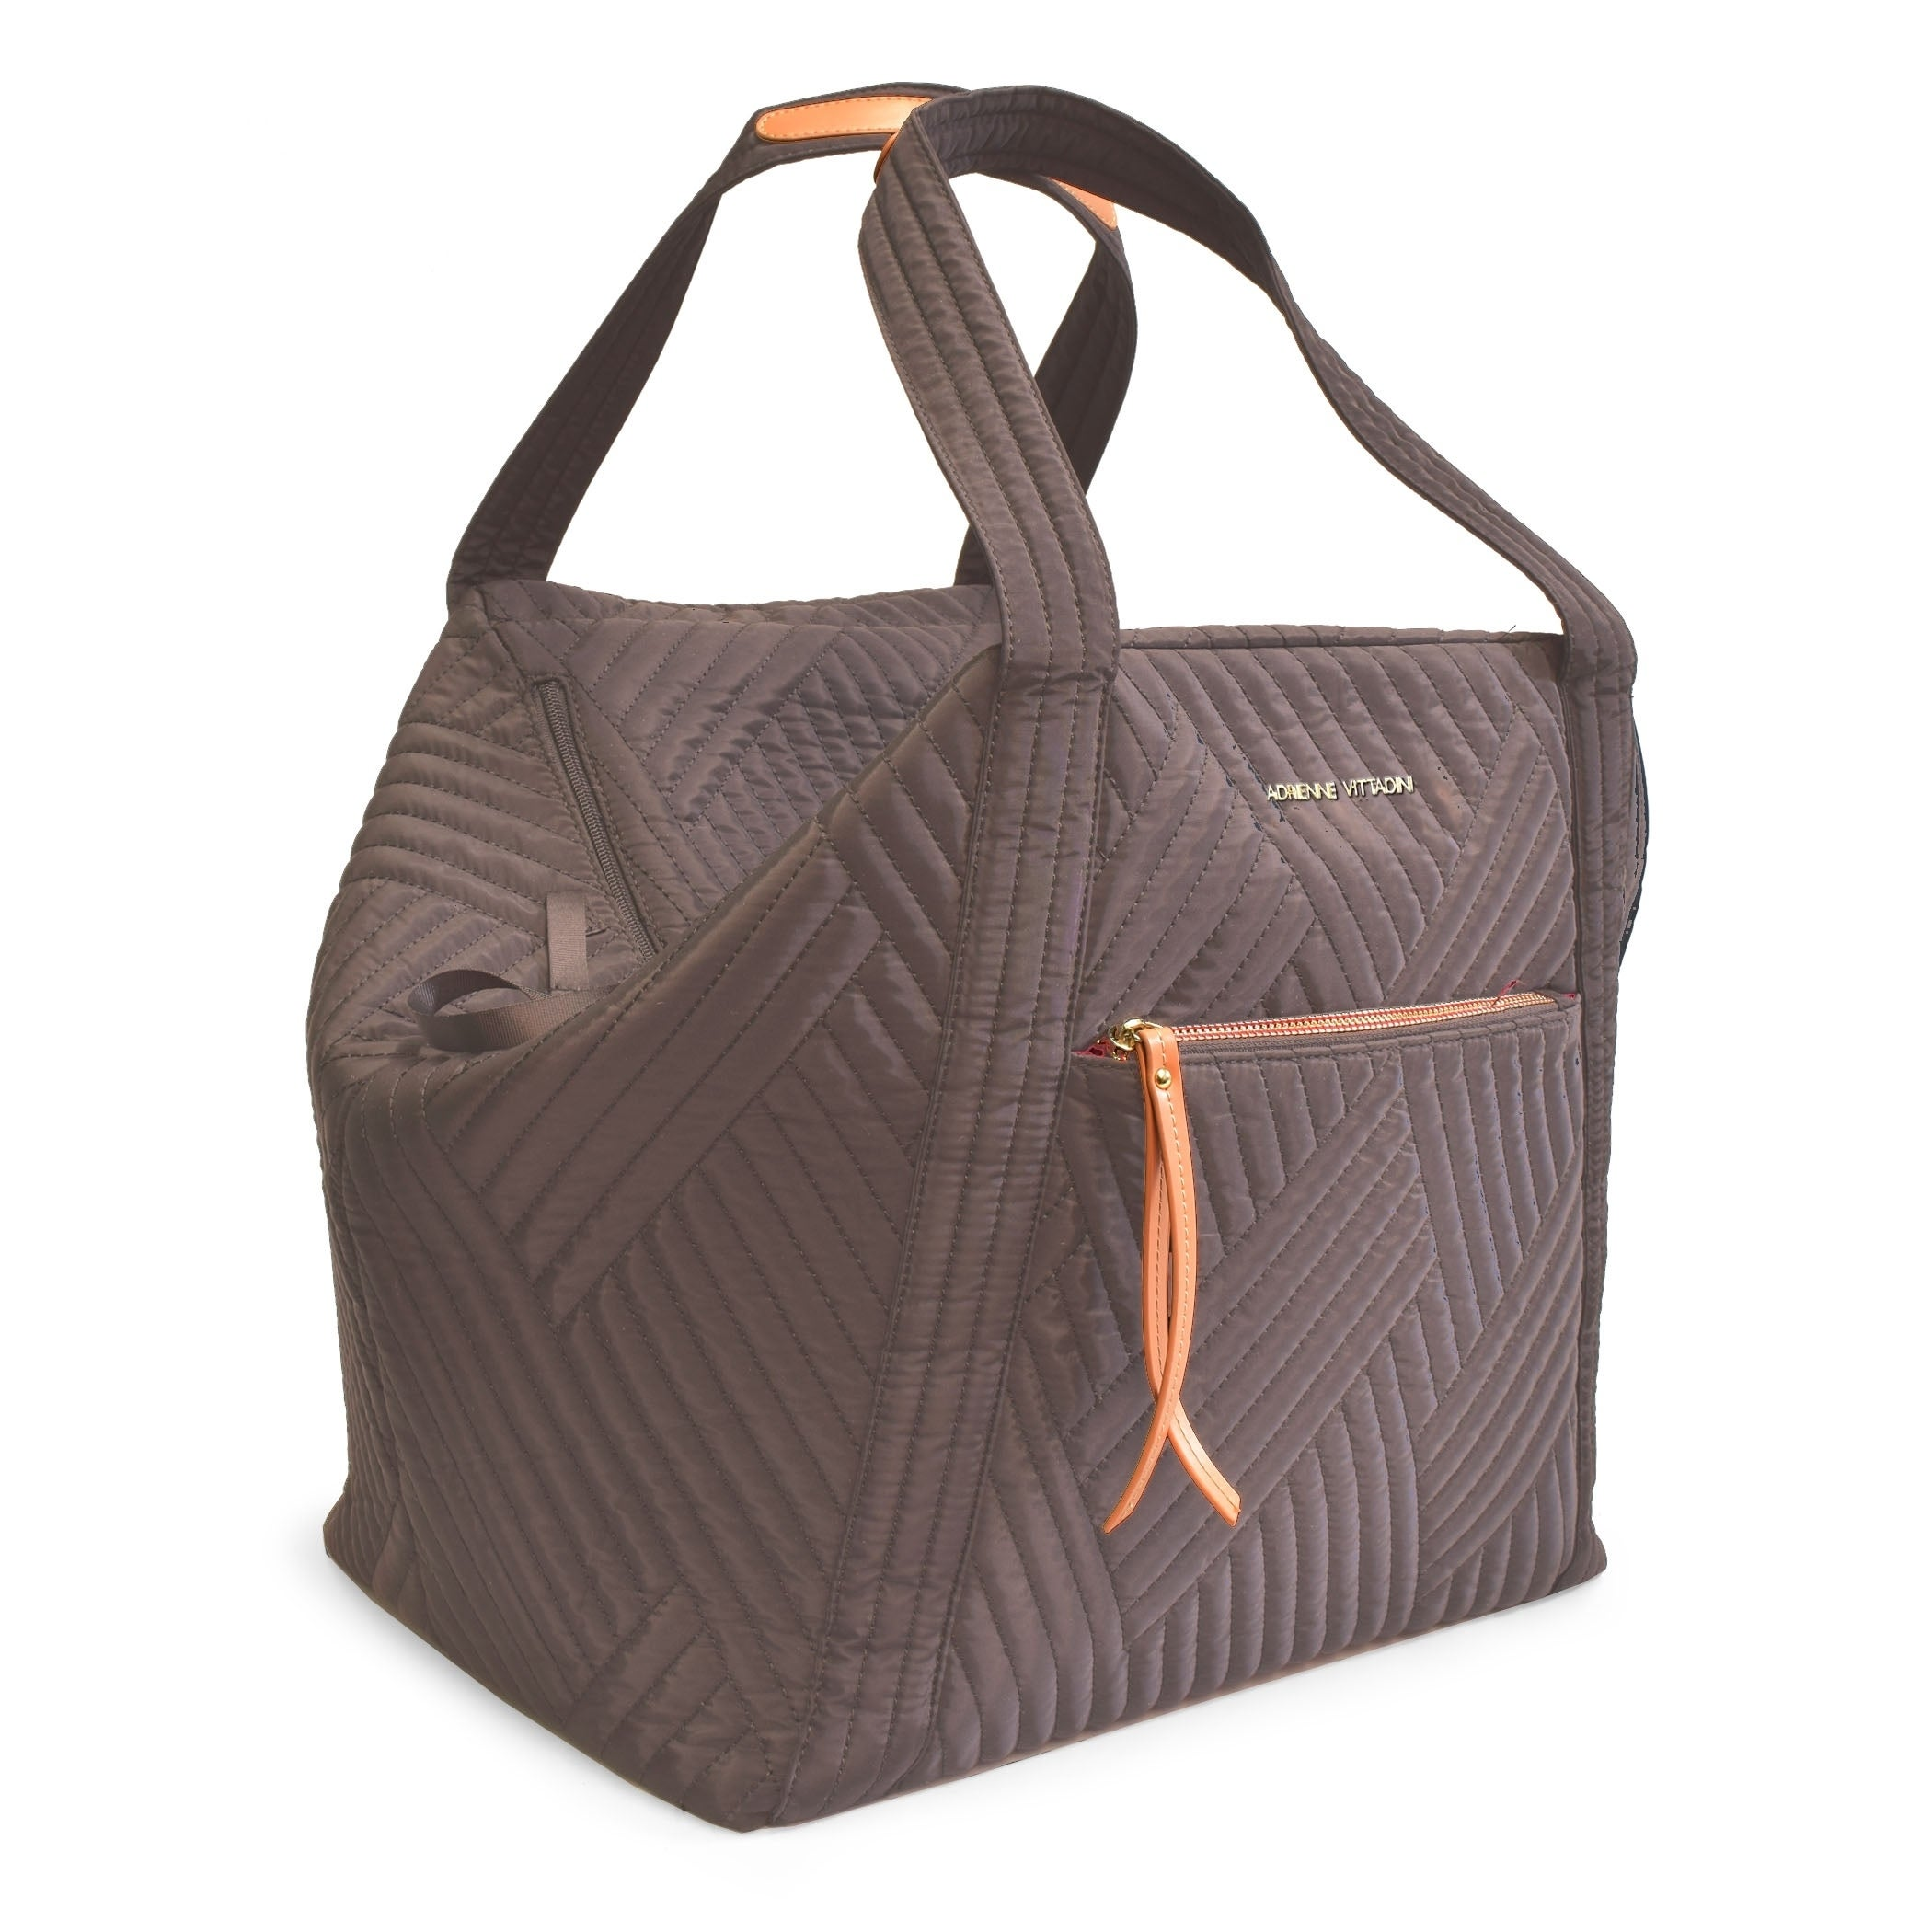 247357f18d6 Quilted Bags | Shop our Best Luggage & Bags Deals Online at Overstock